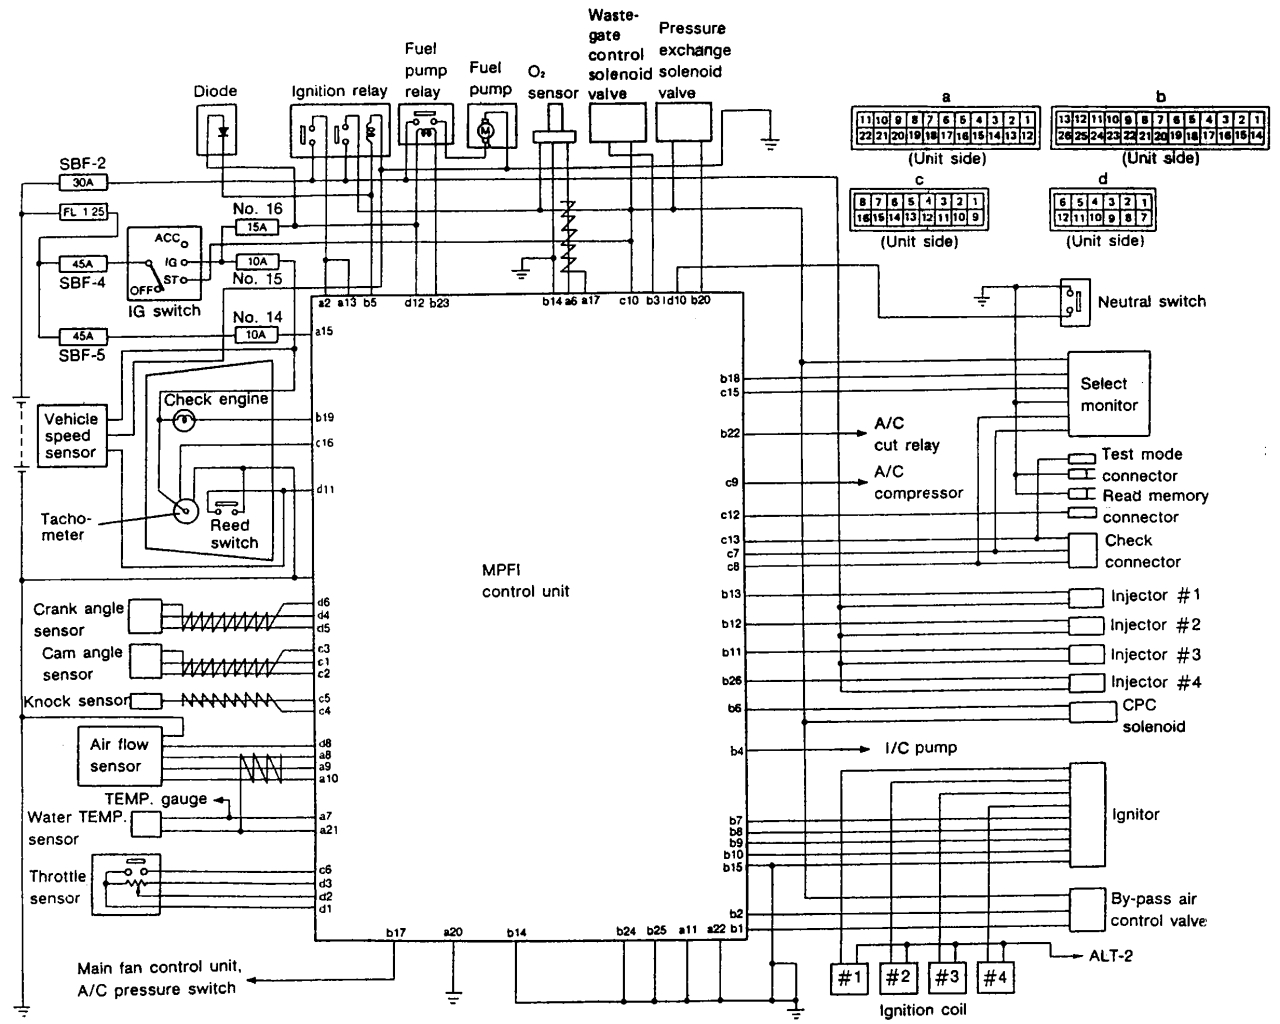 2005 subaru legacy turbo engine diagram schematics wiring diagrams u2022 rh seniorlivinguniversity co